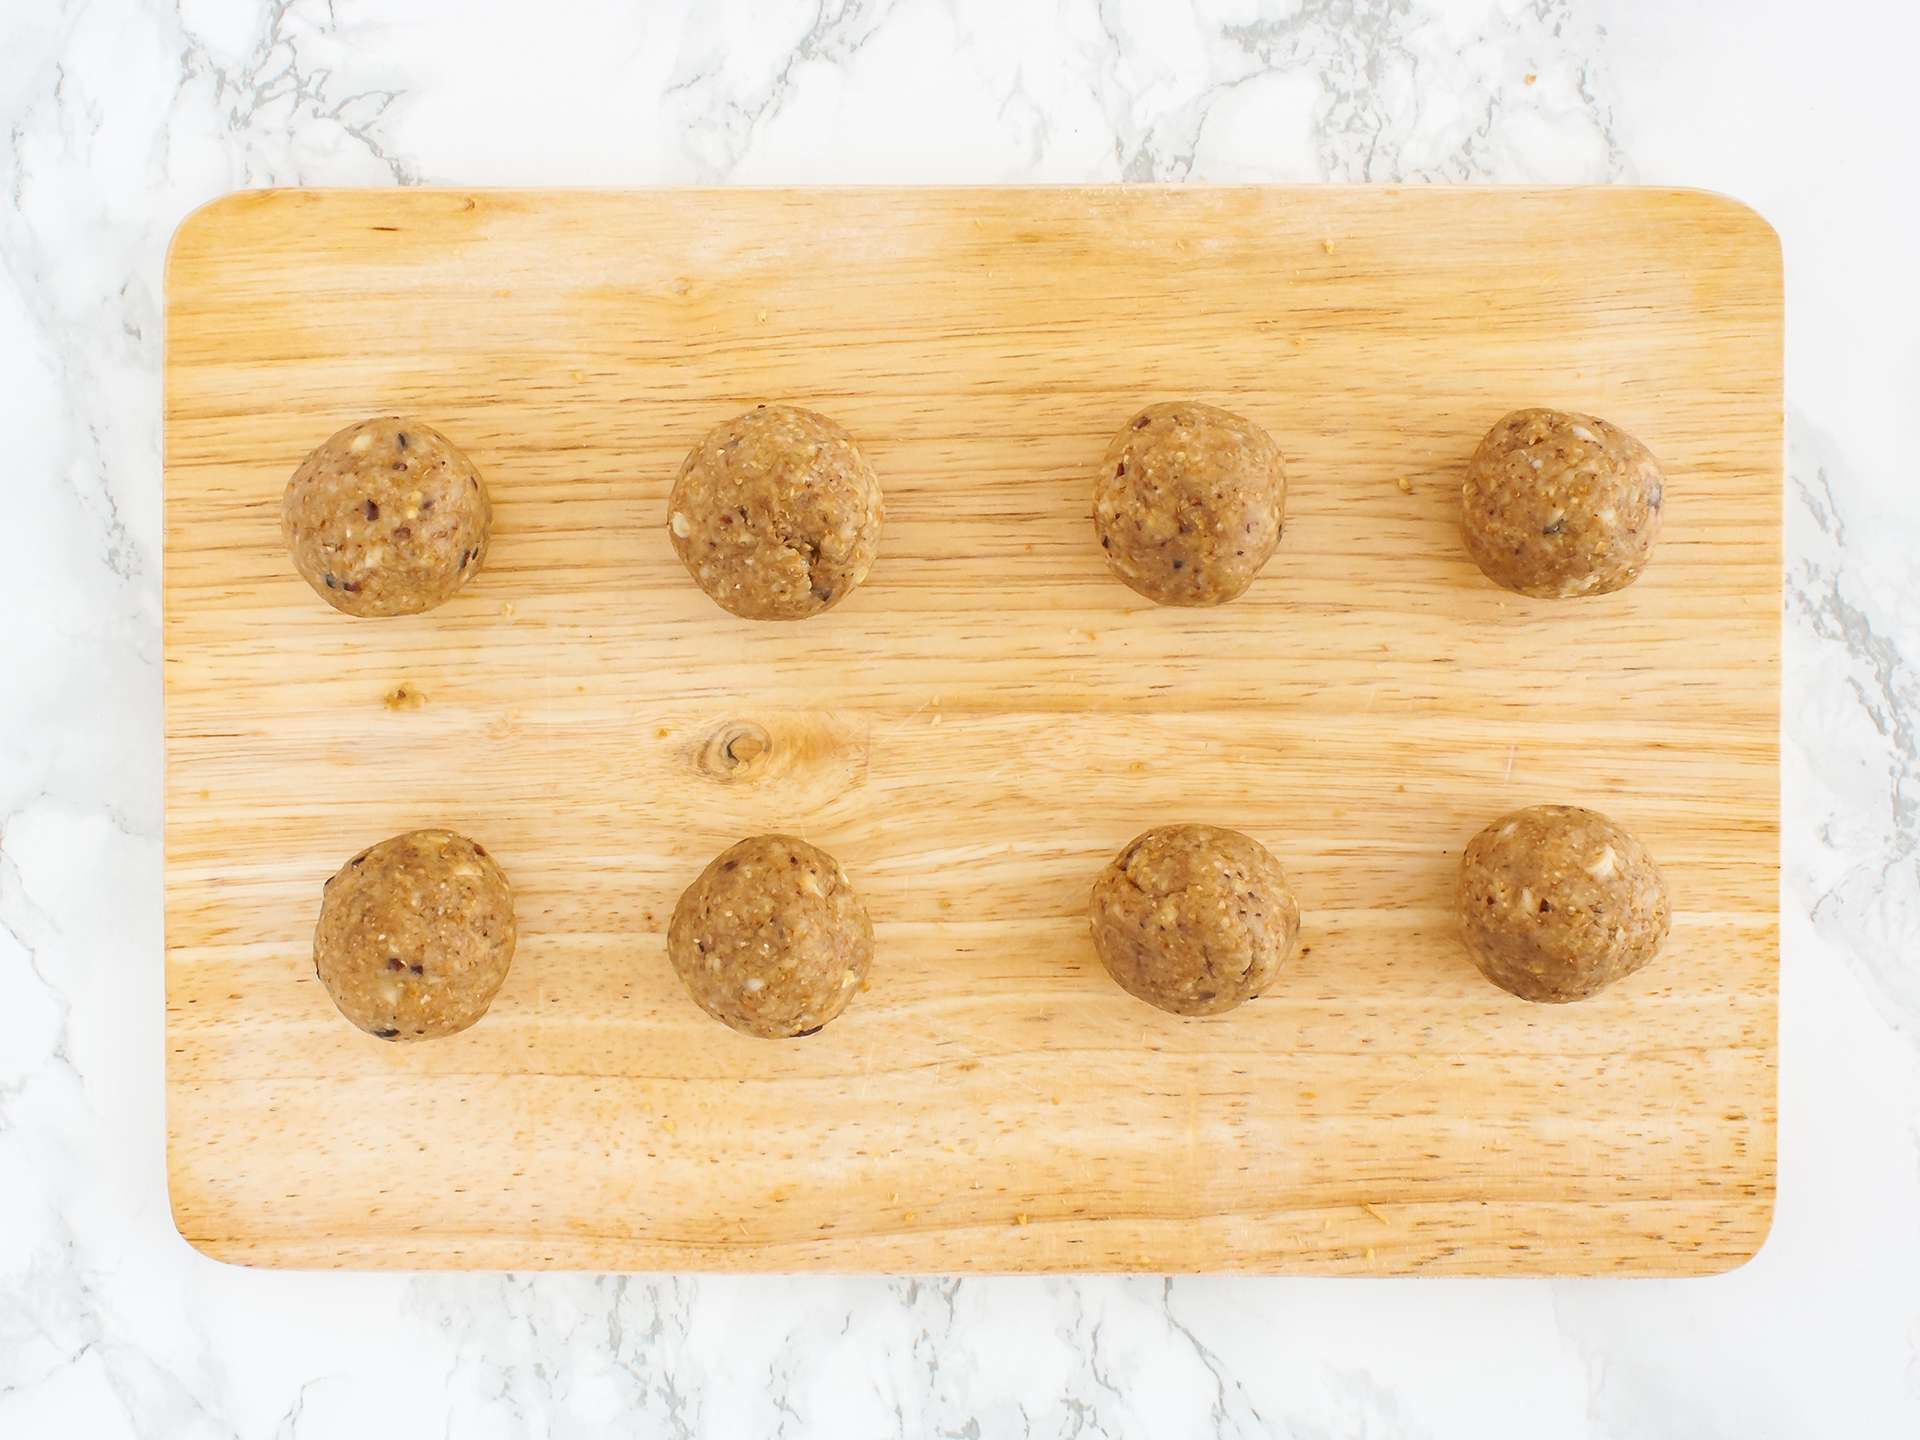 Step 2.2 of Chocolate and Coconut Cashew Truffles Recipe